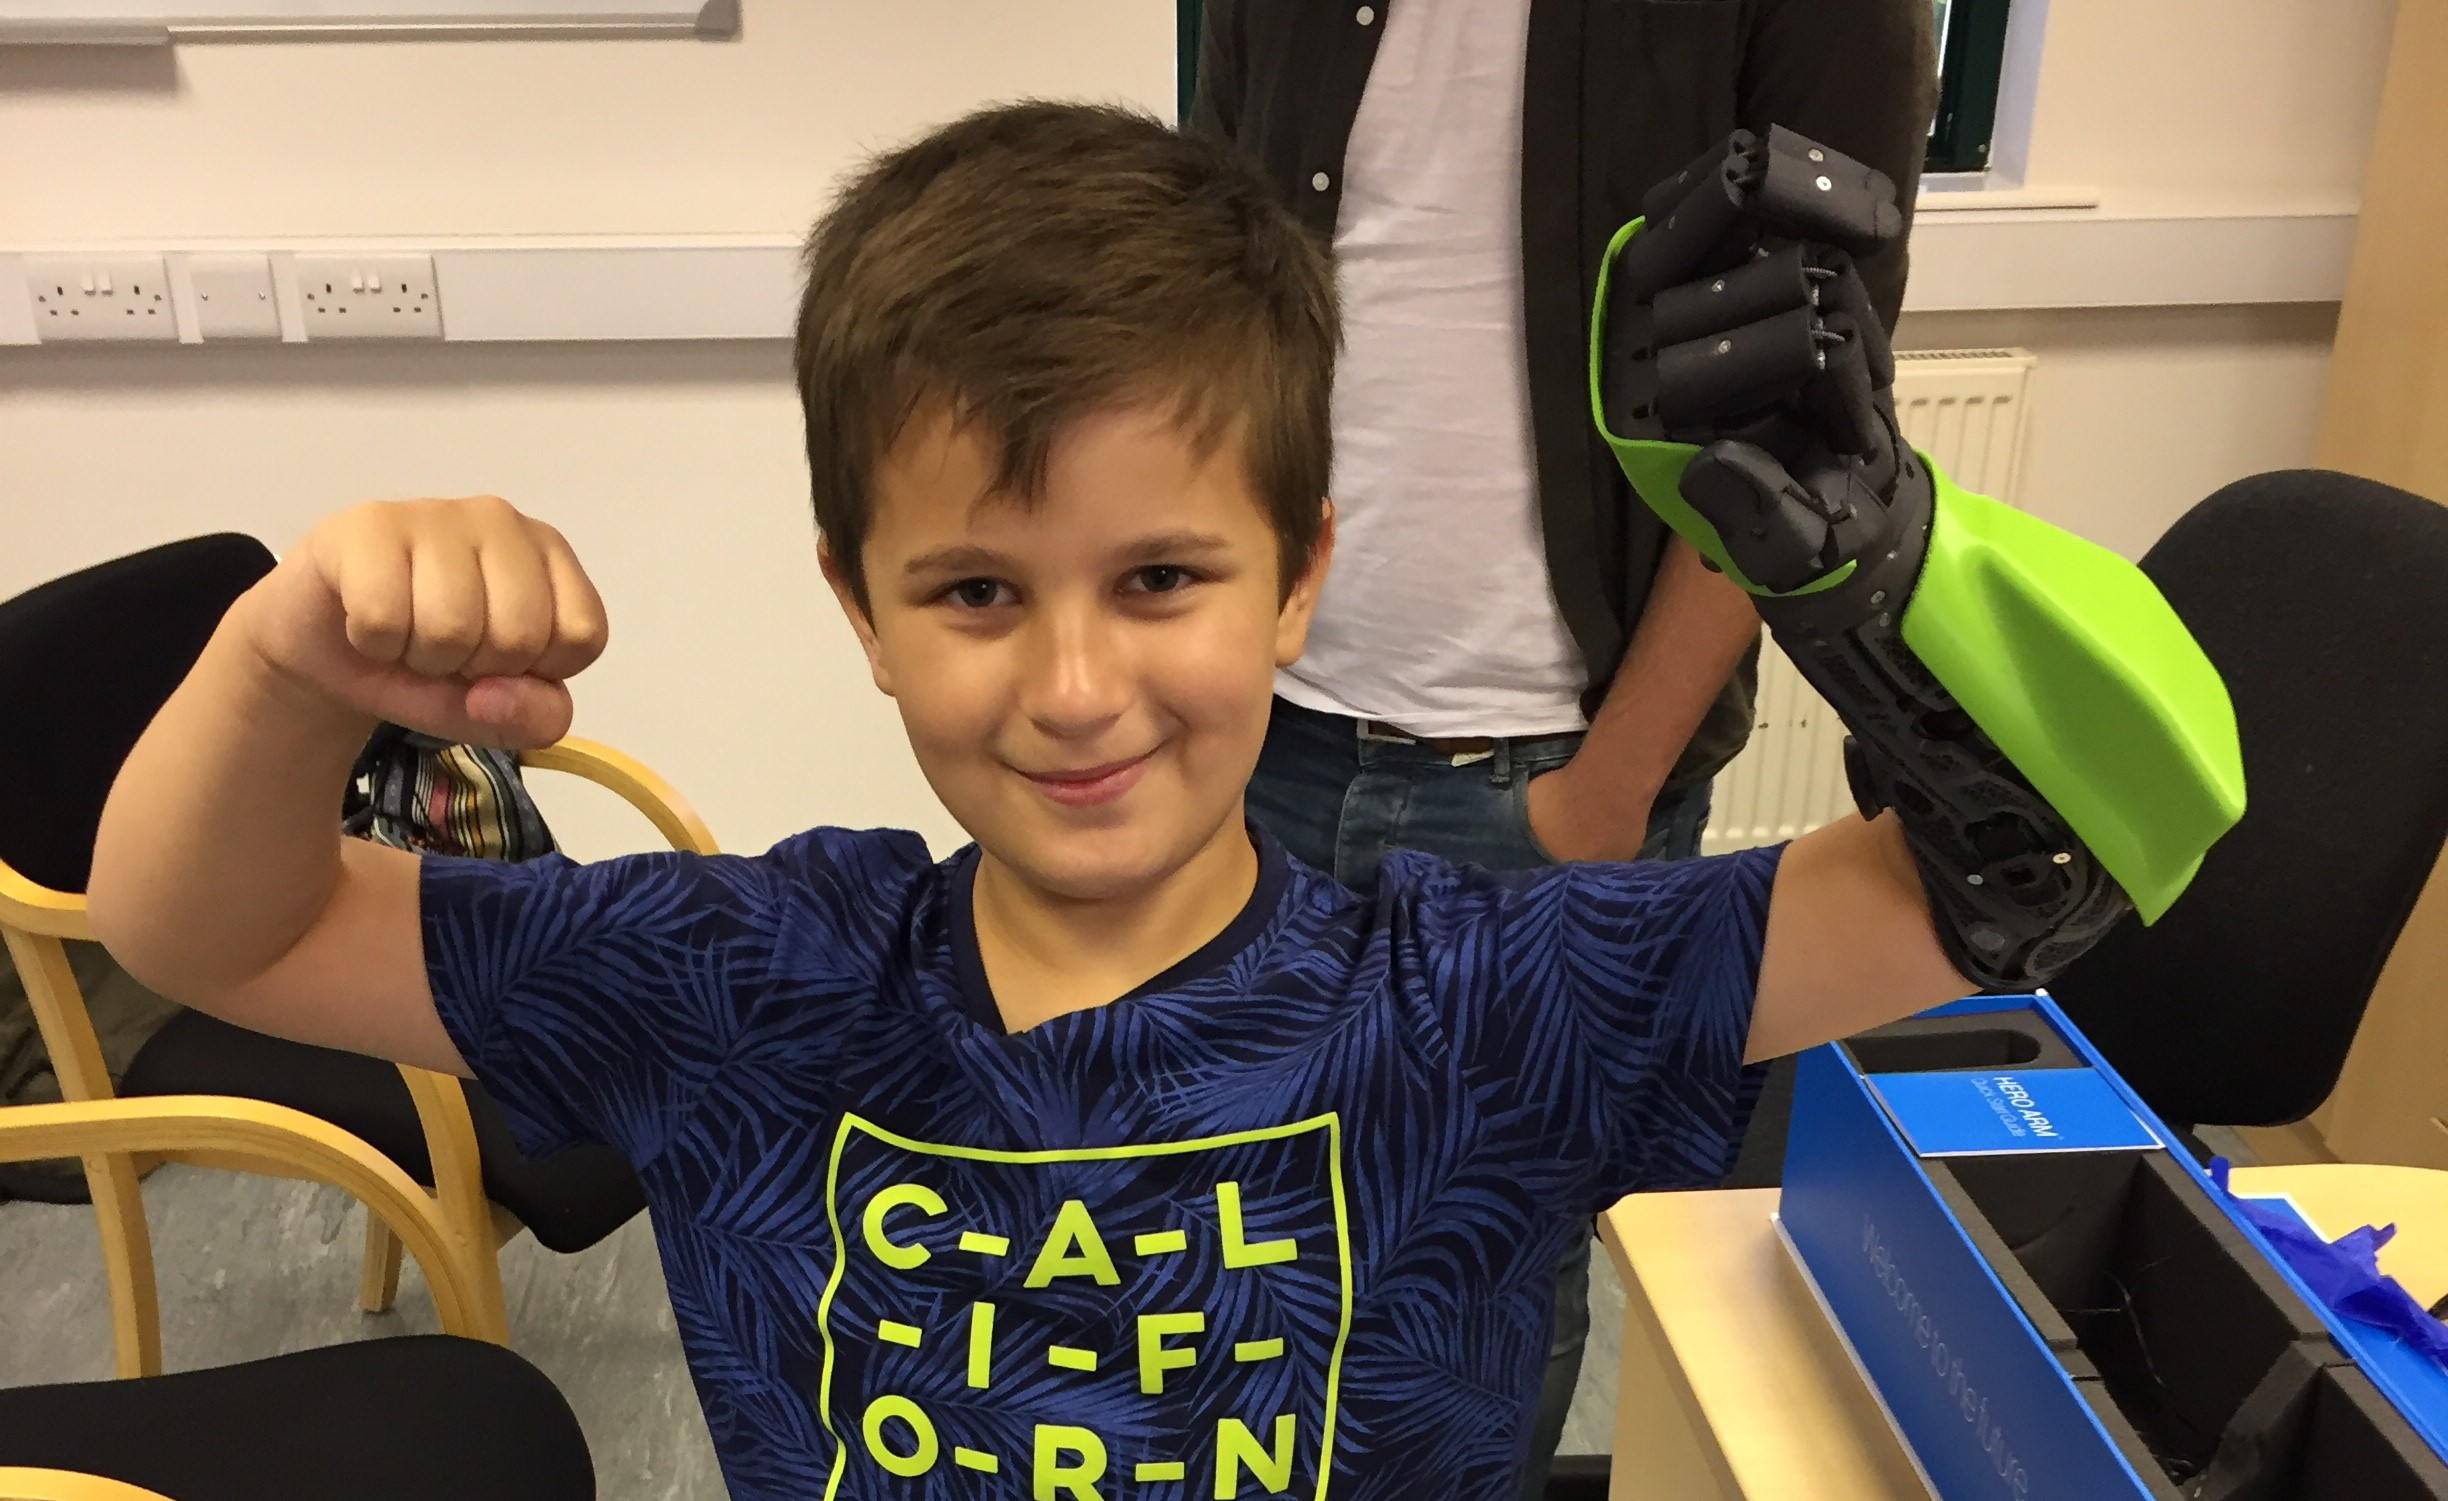 Boy wearing black and green Hero Arm does strong man pose